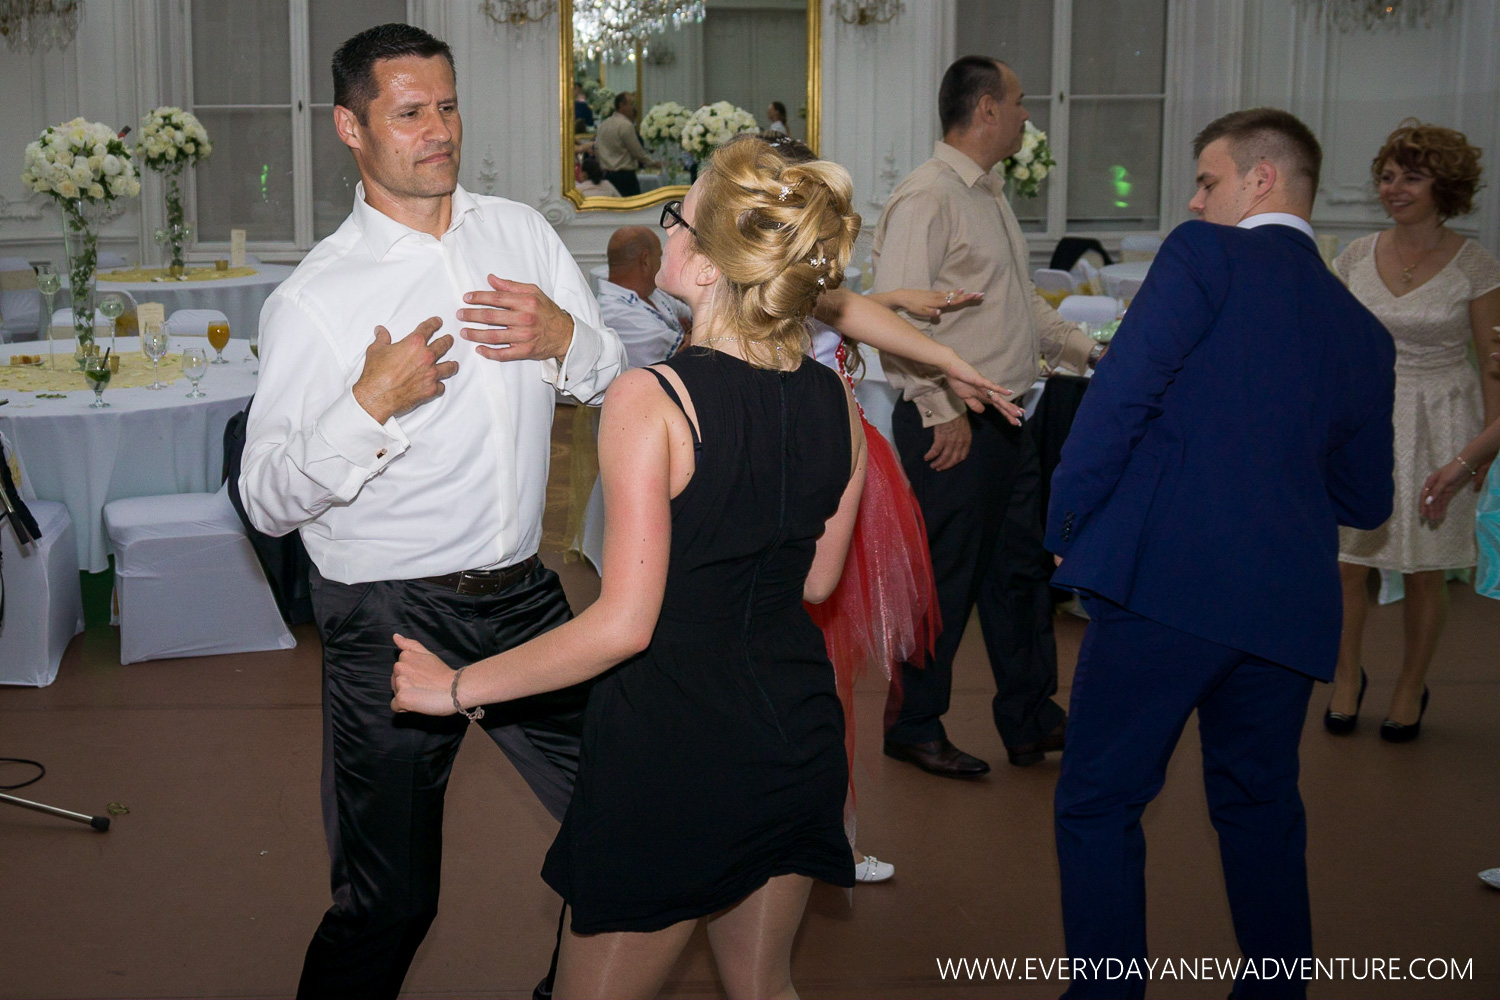 [SqSp1500-106] Budapest - Inez and Arni's Wedding!-678.jpg